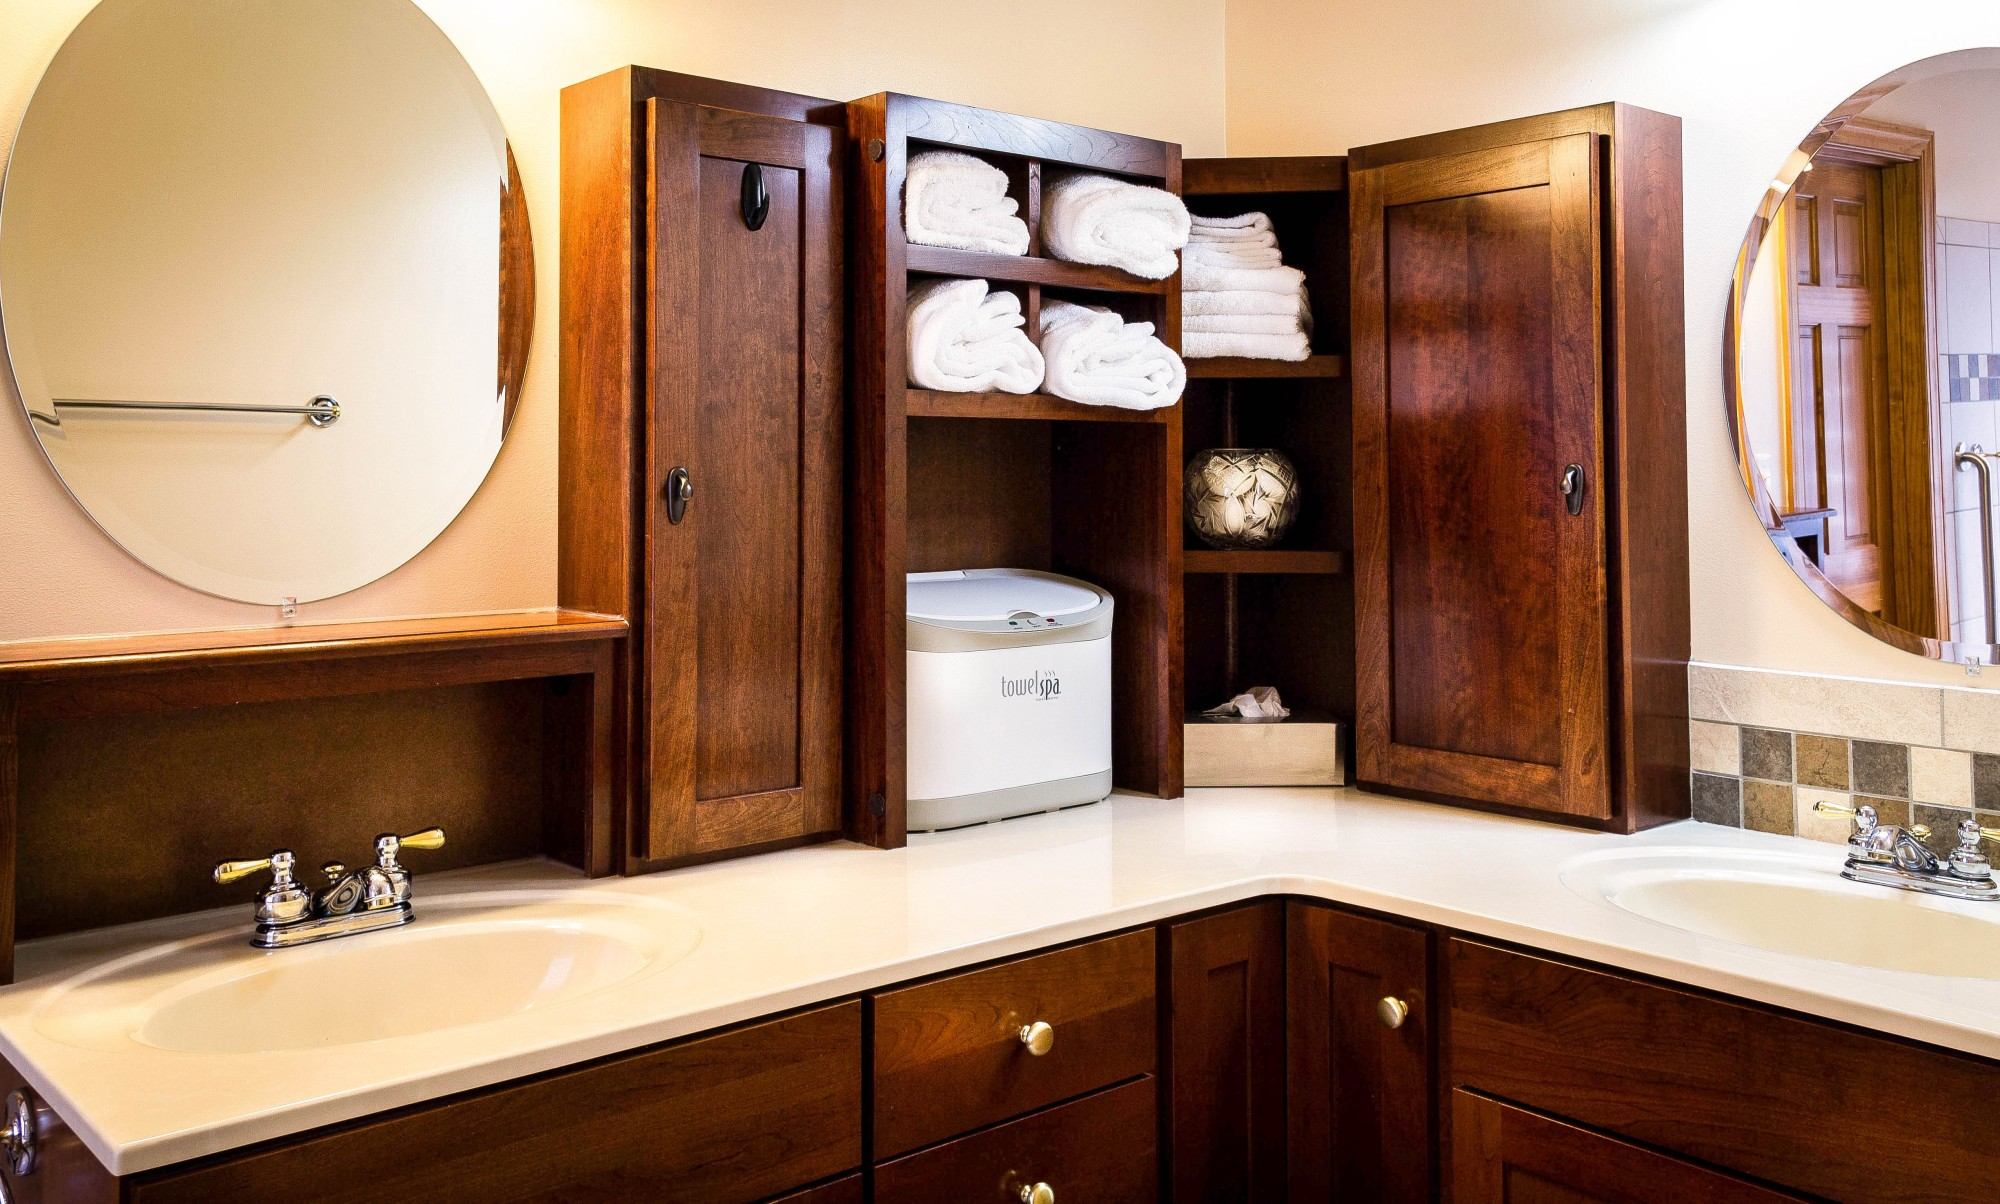 Making the Most of Bathroom Space: 7 of the Best Bathroom Organization Ideas